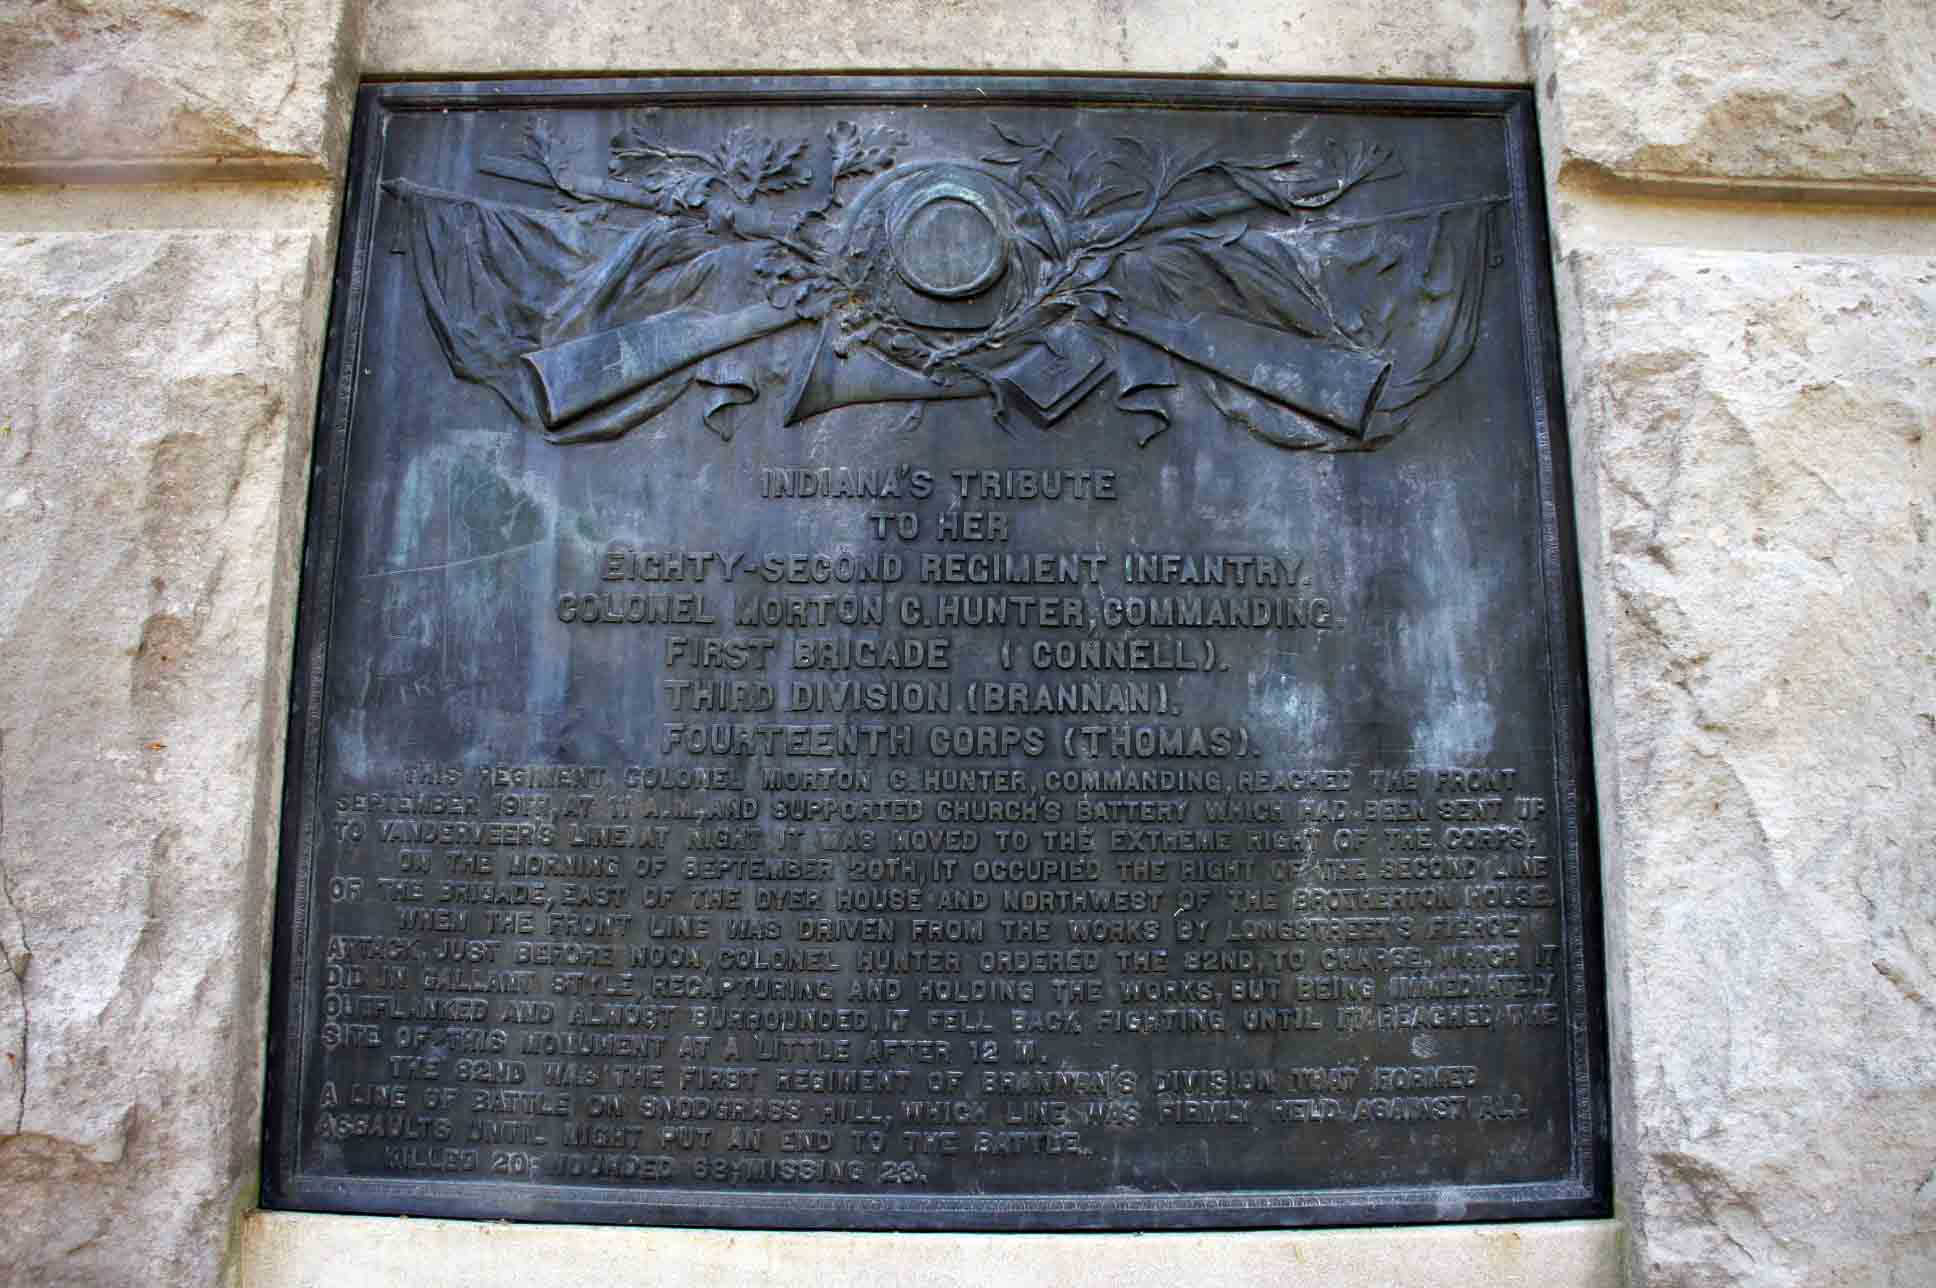 82nd Indiana Infantry Regiment Monument, click photo to enlarge.